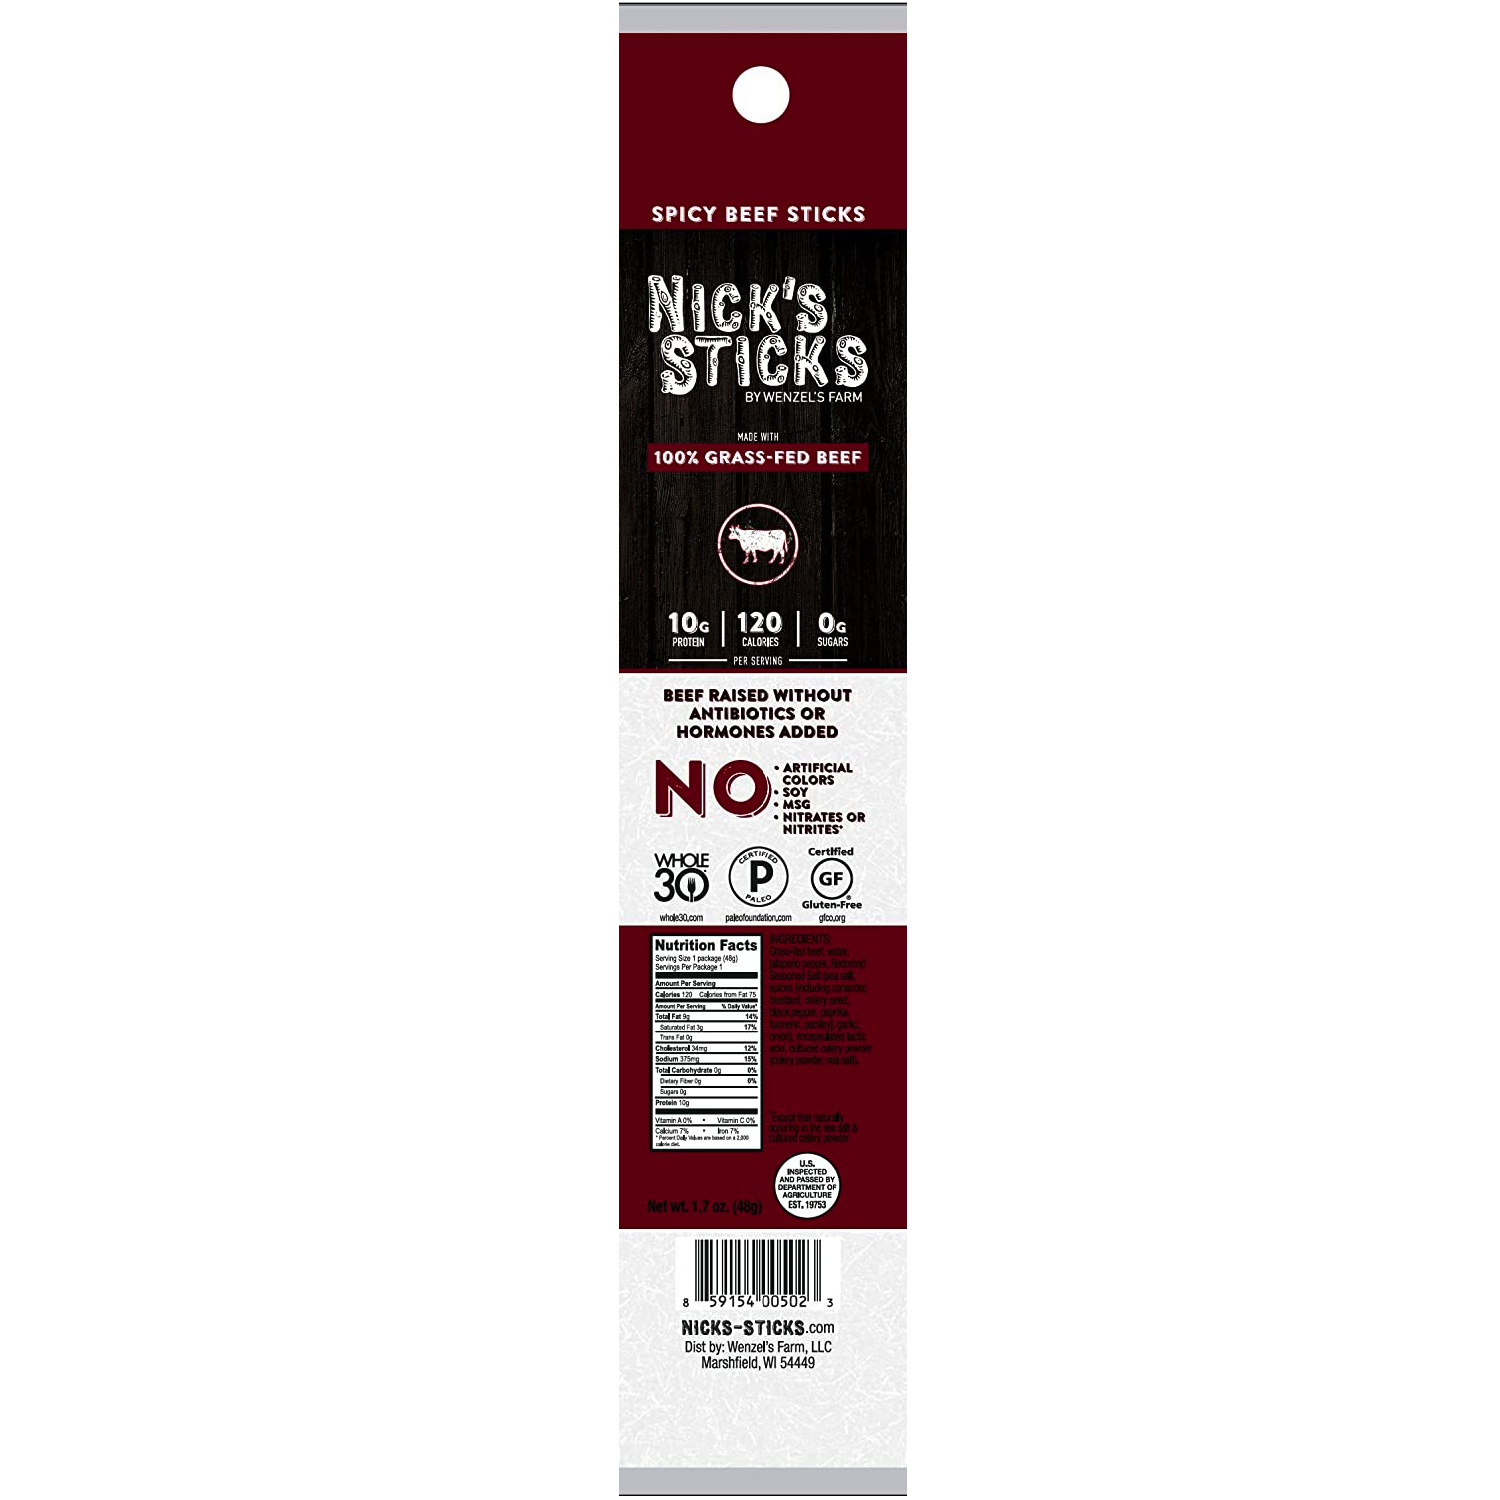 100% Grass-Fed Spicy Beef Snack Sticks - Nick's Sticks - Certified Paleo, Keto Certified by the Paleo Foundation